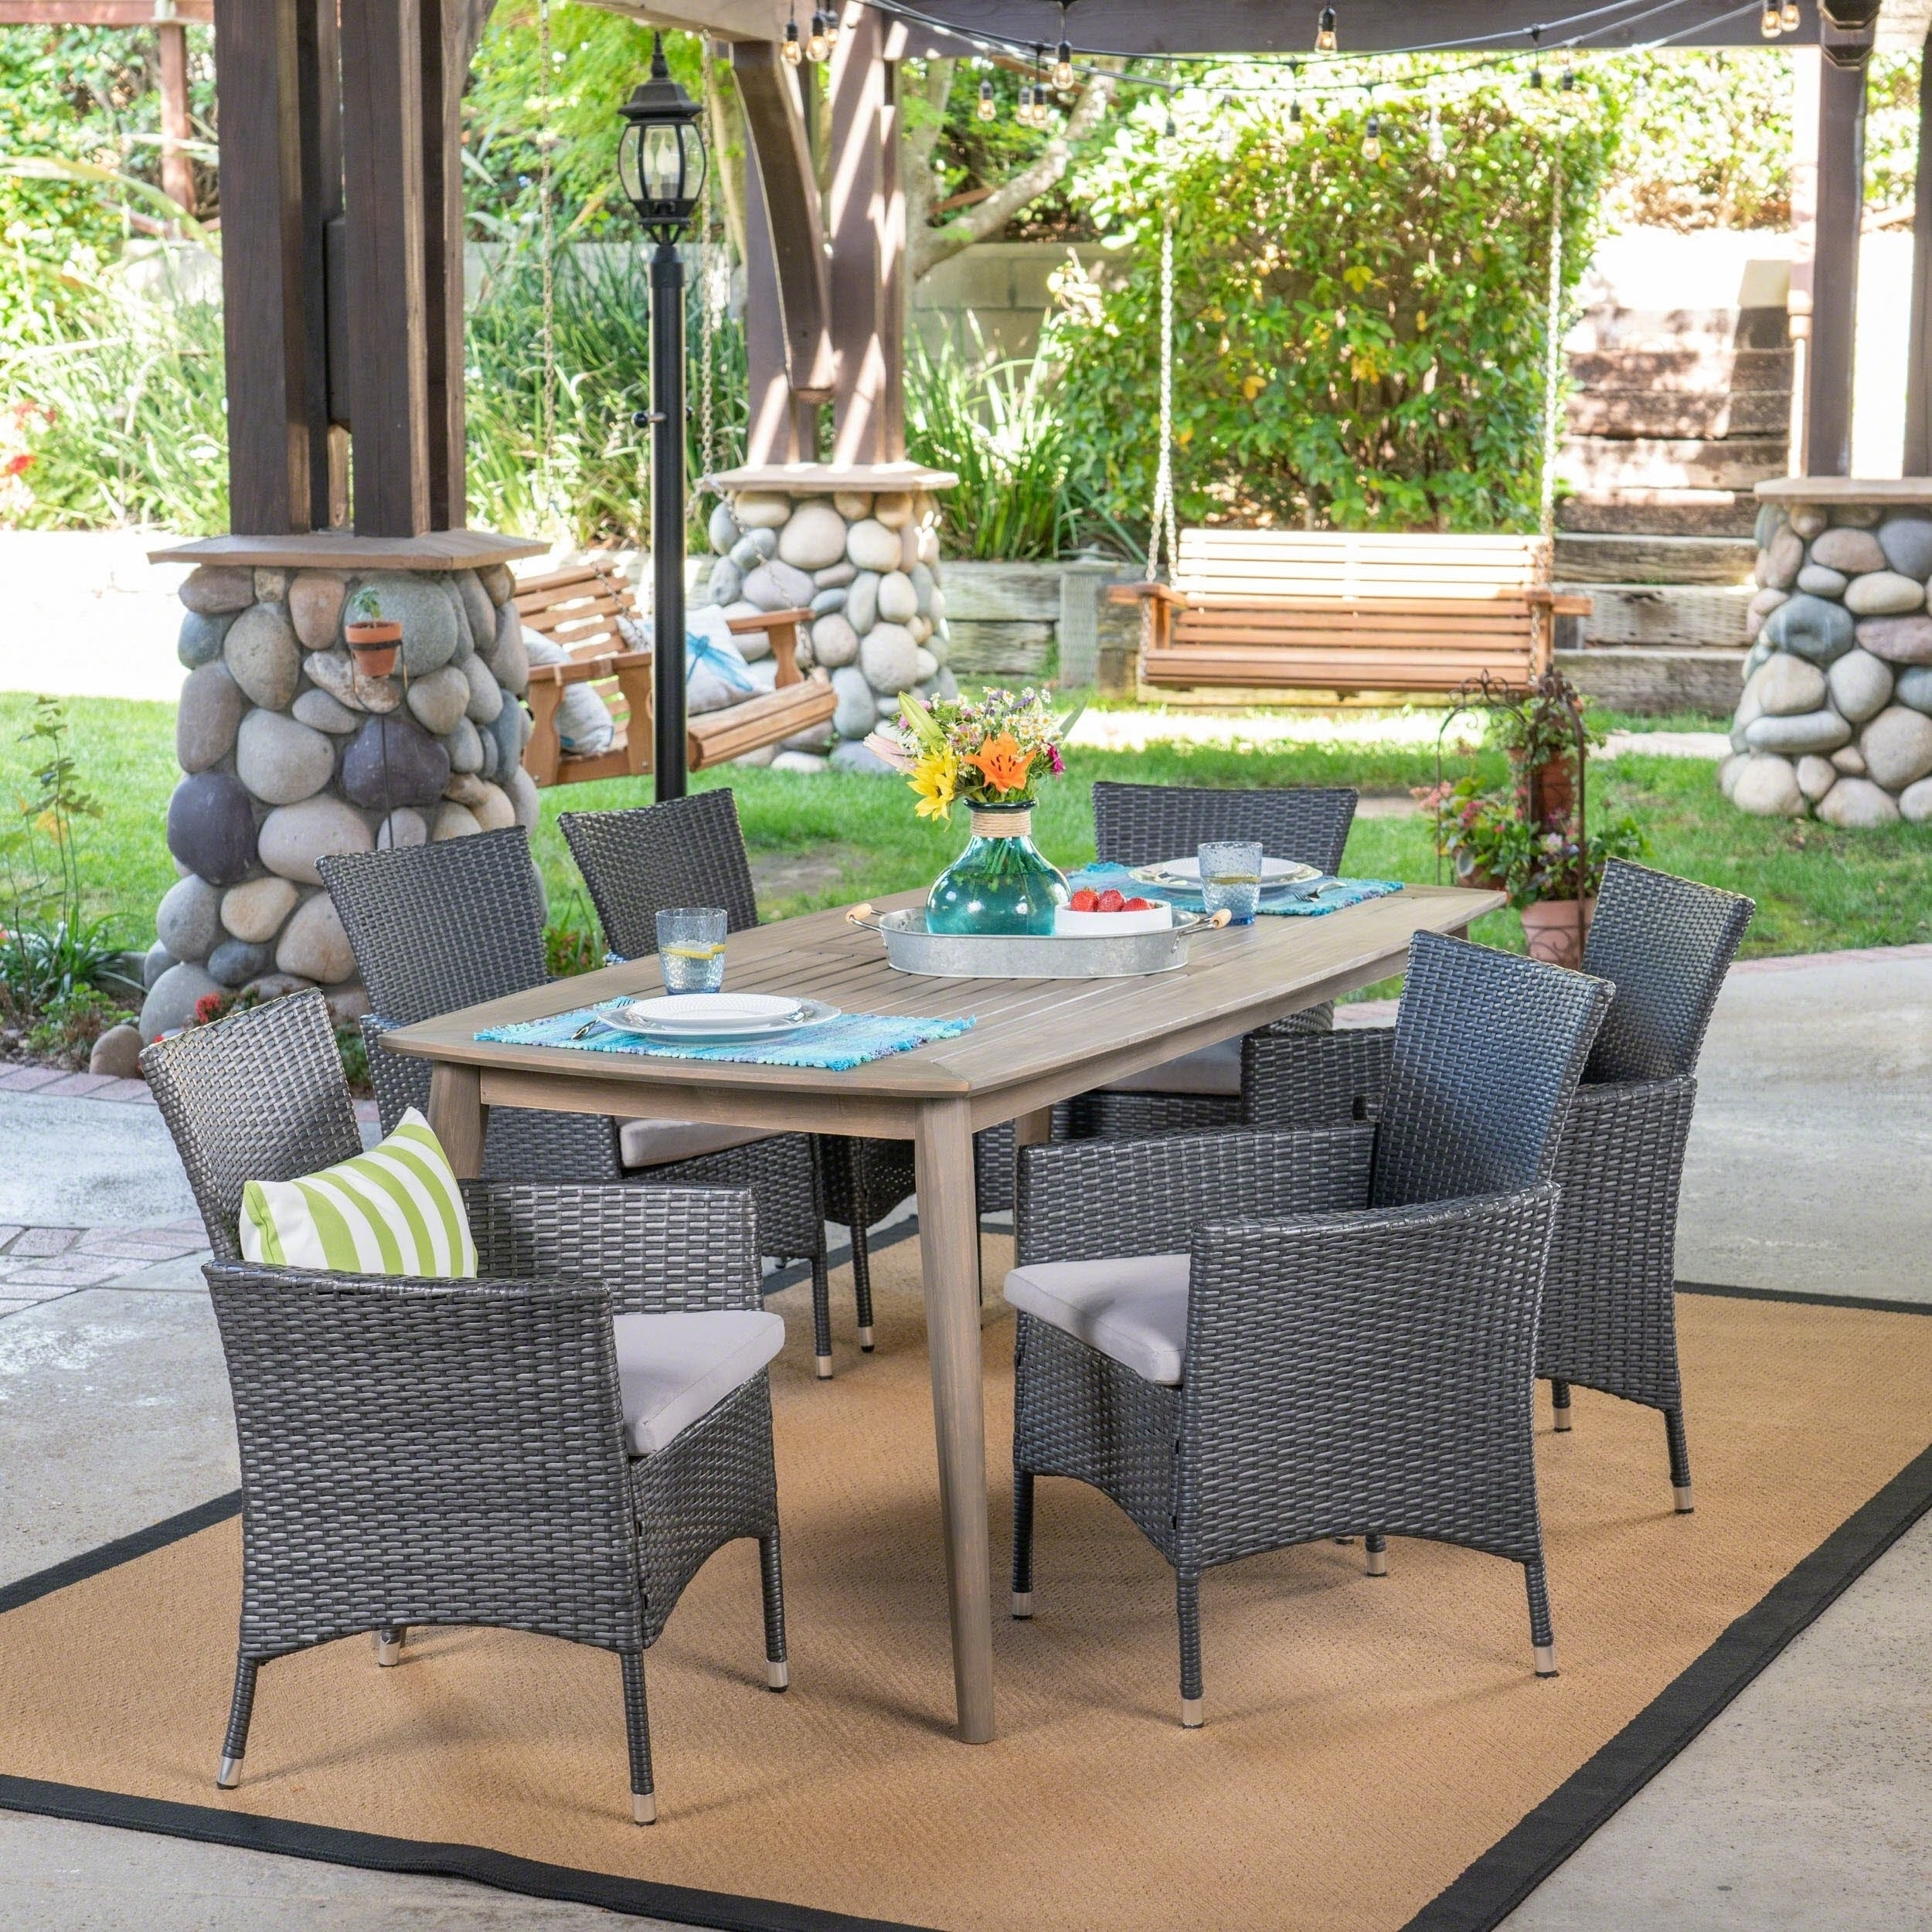 Shop Jaxon Outdoor 7 Piece Multibrown Pe Wicker Dining Set With Pertaining To Latest Jaxon Grey 7 Piece Rectangle Extension Dining Sets With Wood Chairs (Image 19 of 20)